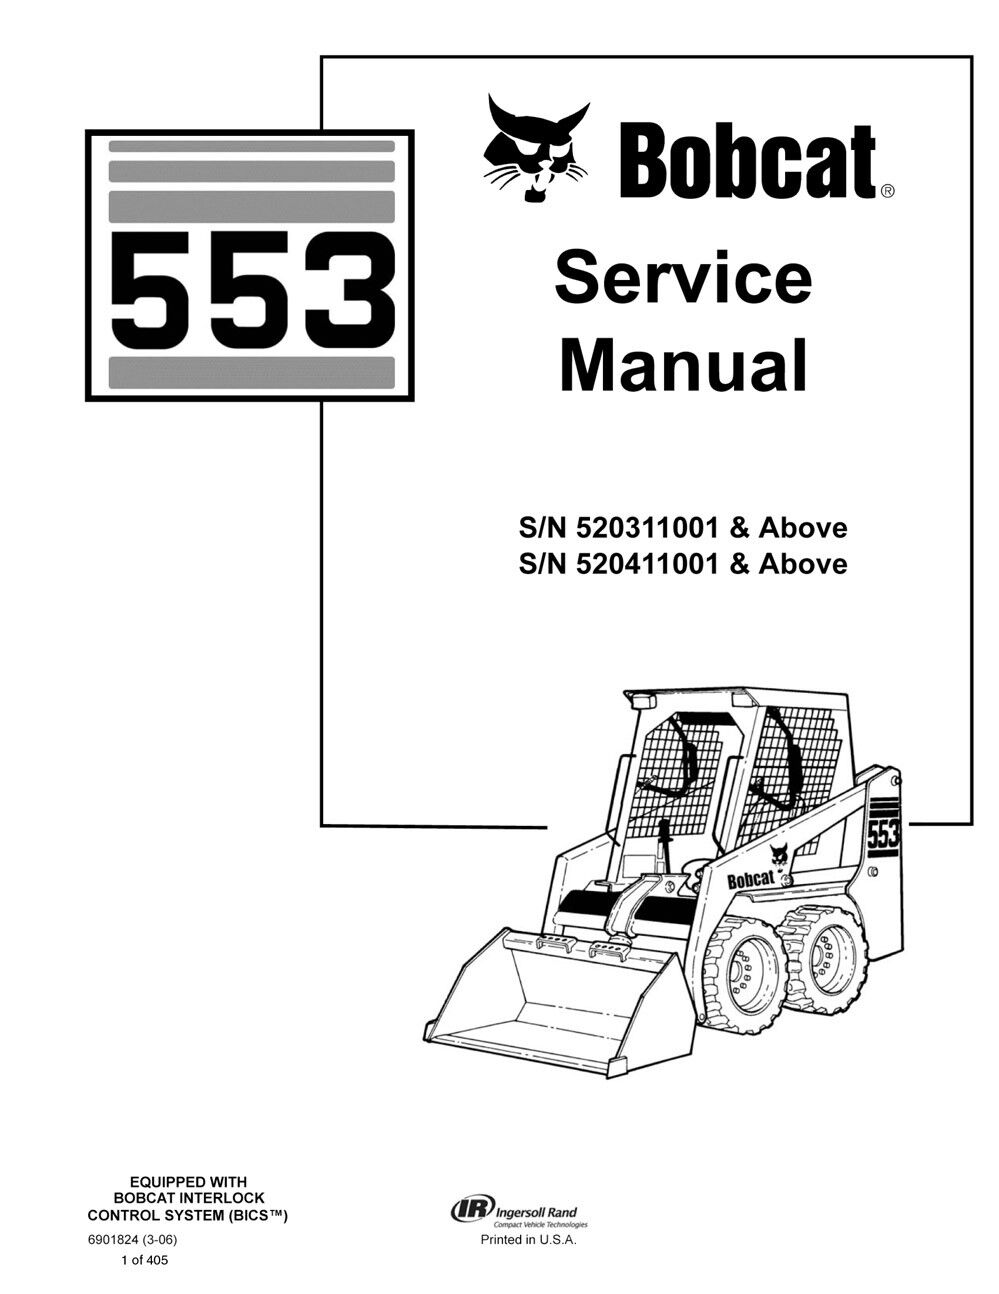 New Bobcat 553 Skid Steer Loader 2006 Edition Repair